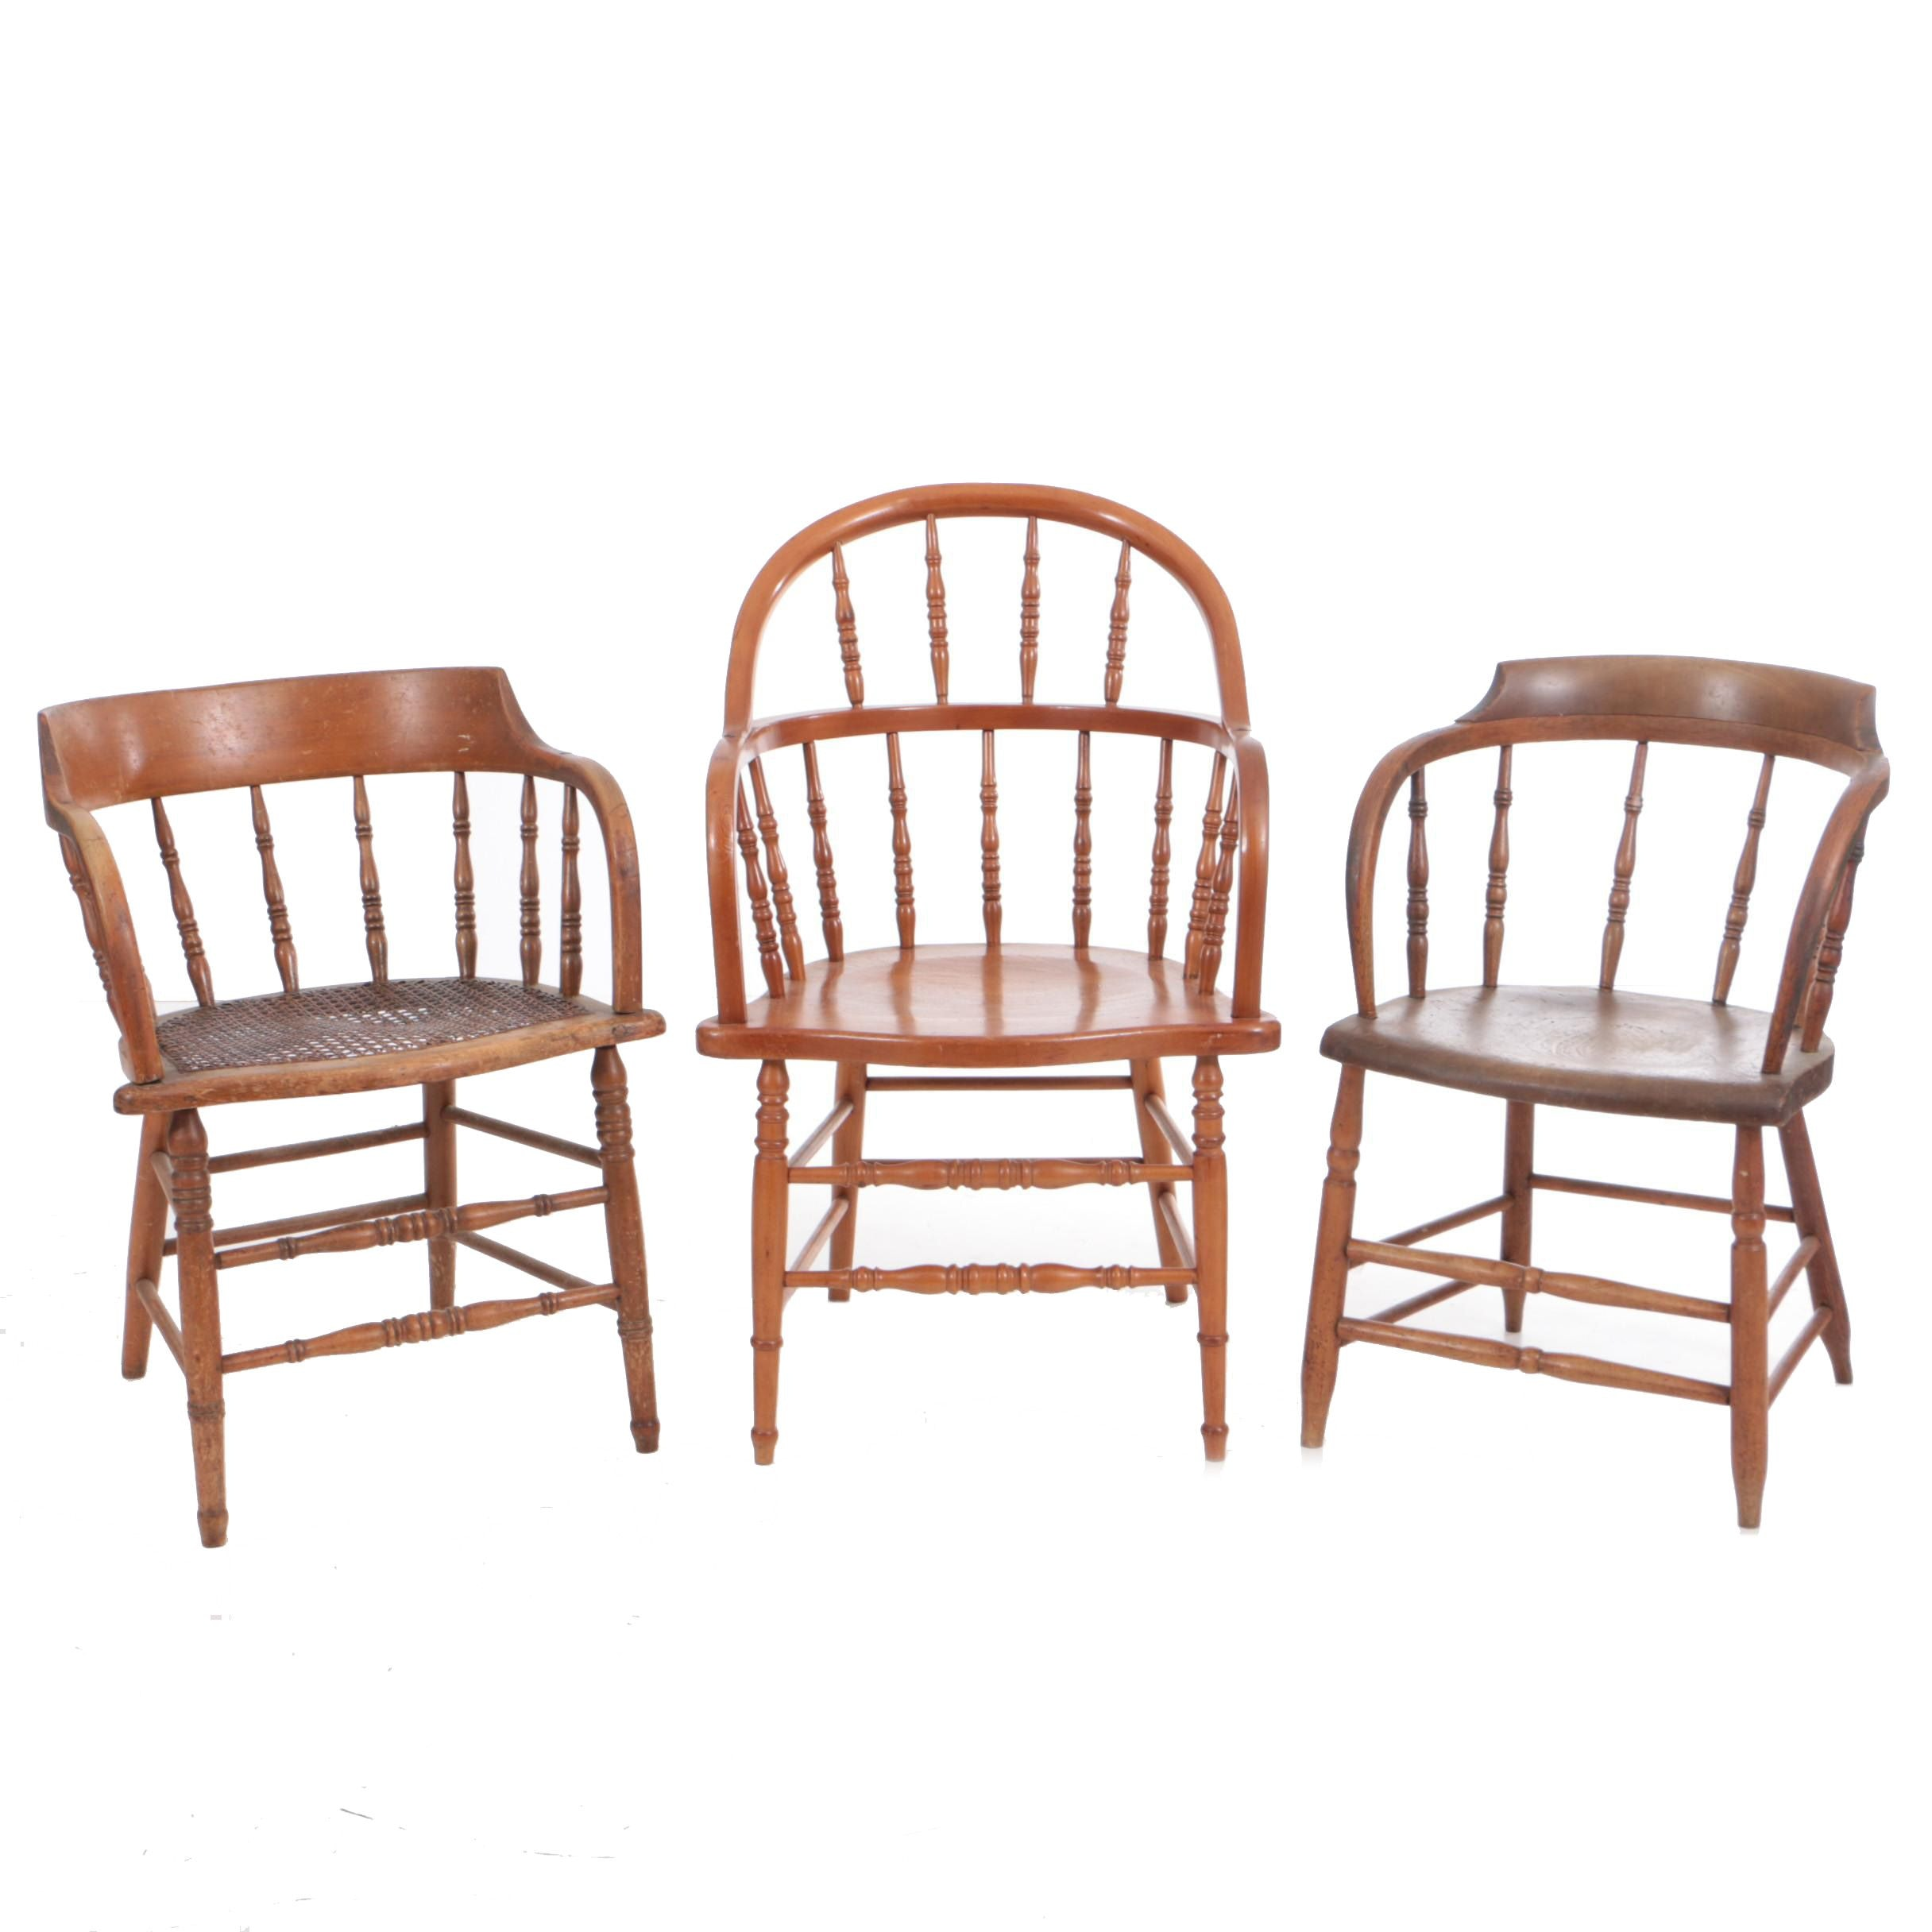 Antique and Vintage Windsor Style Armchairs